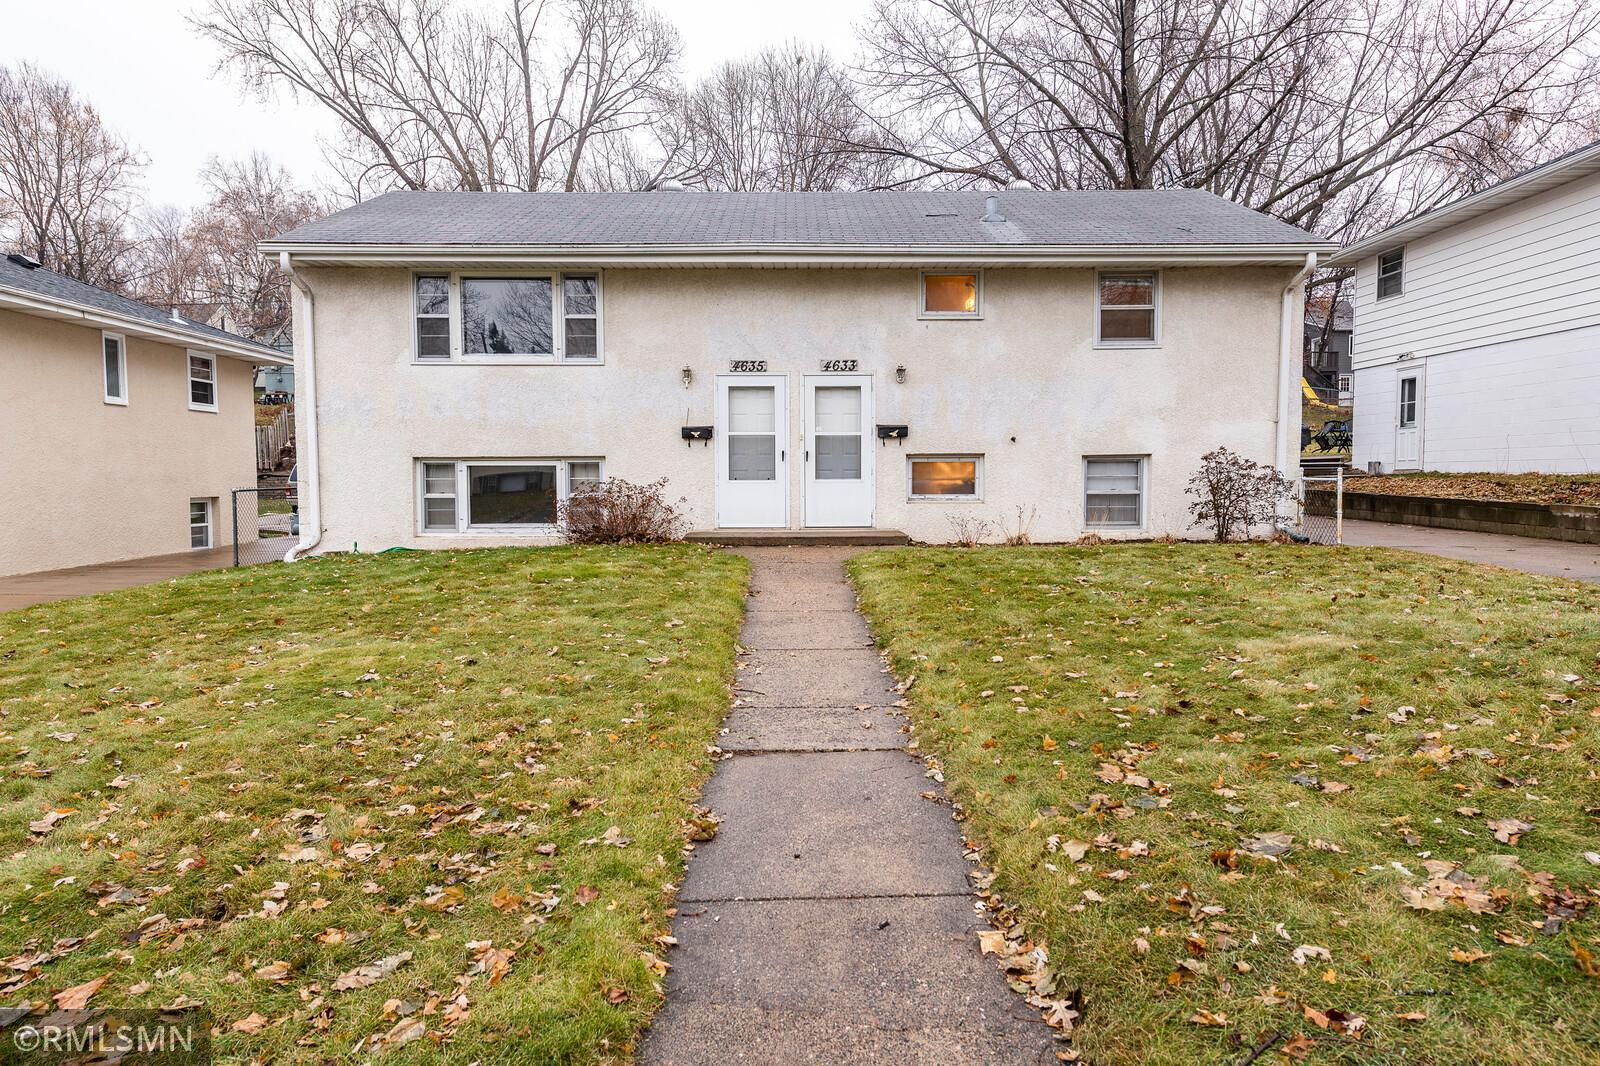 4633 Washington Street NE Property Photo - Columbia Heights, MN real estate listing